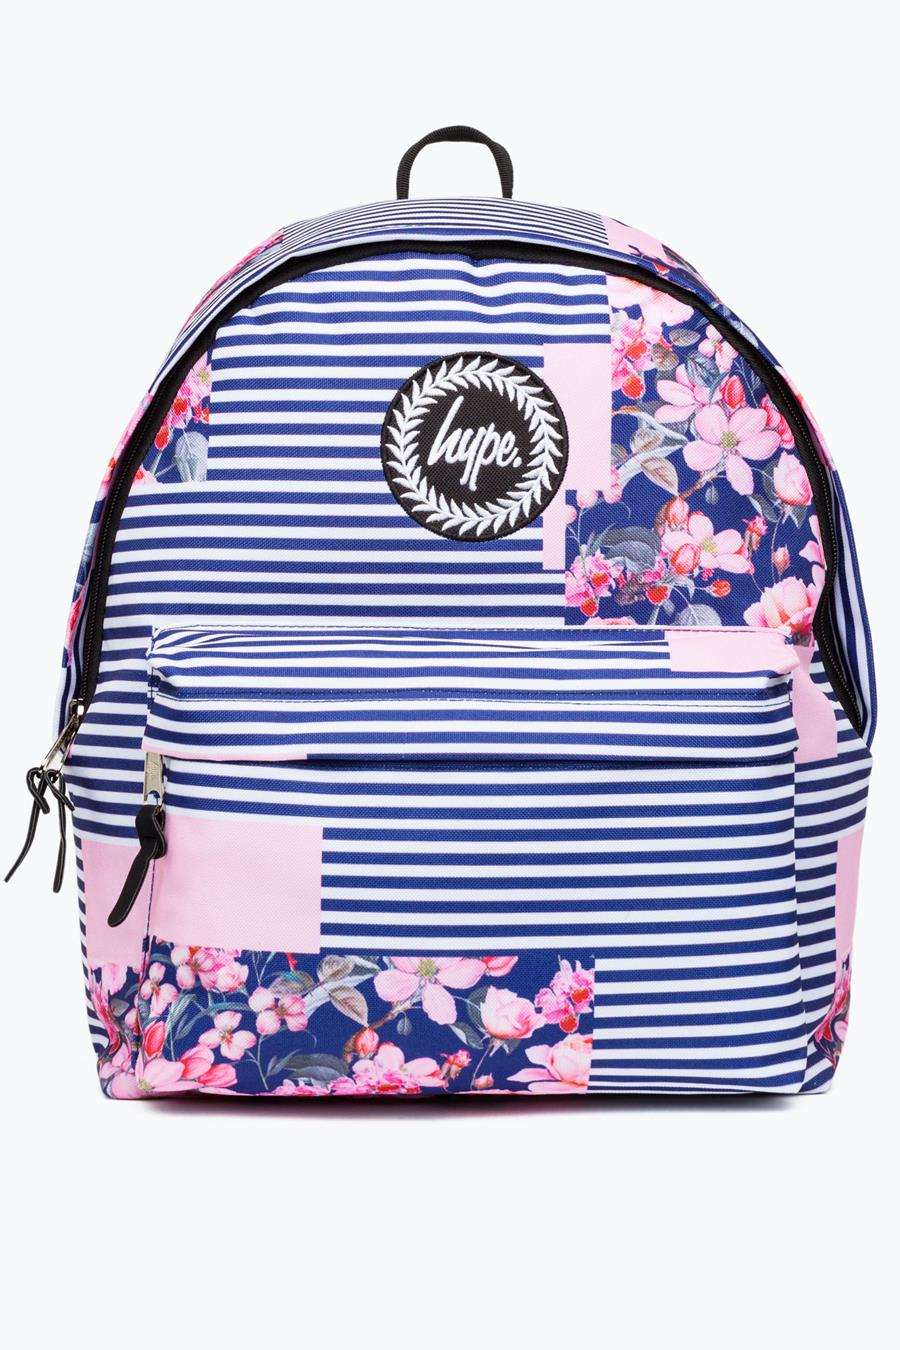 888a4f8938e6 HYPE MULTI FLORAL STRIPE BACKPACK – JustHype ltd